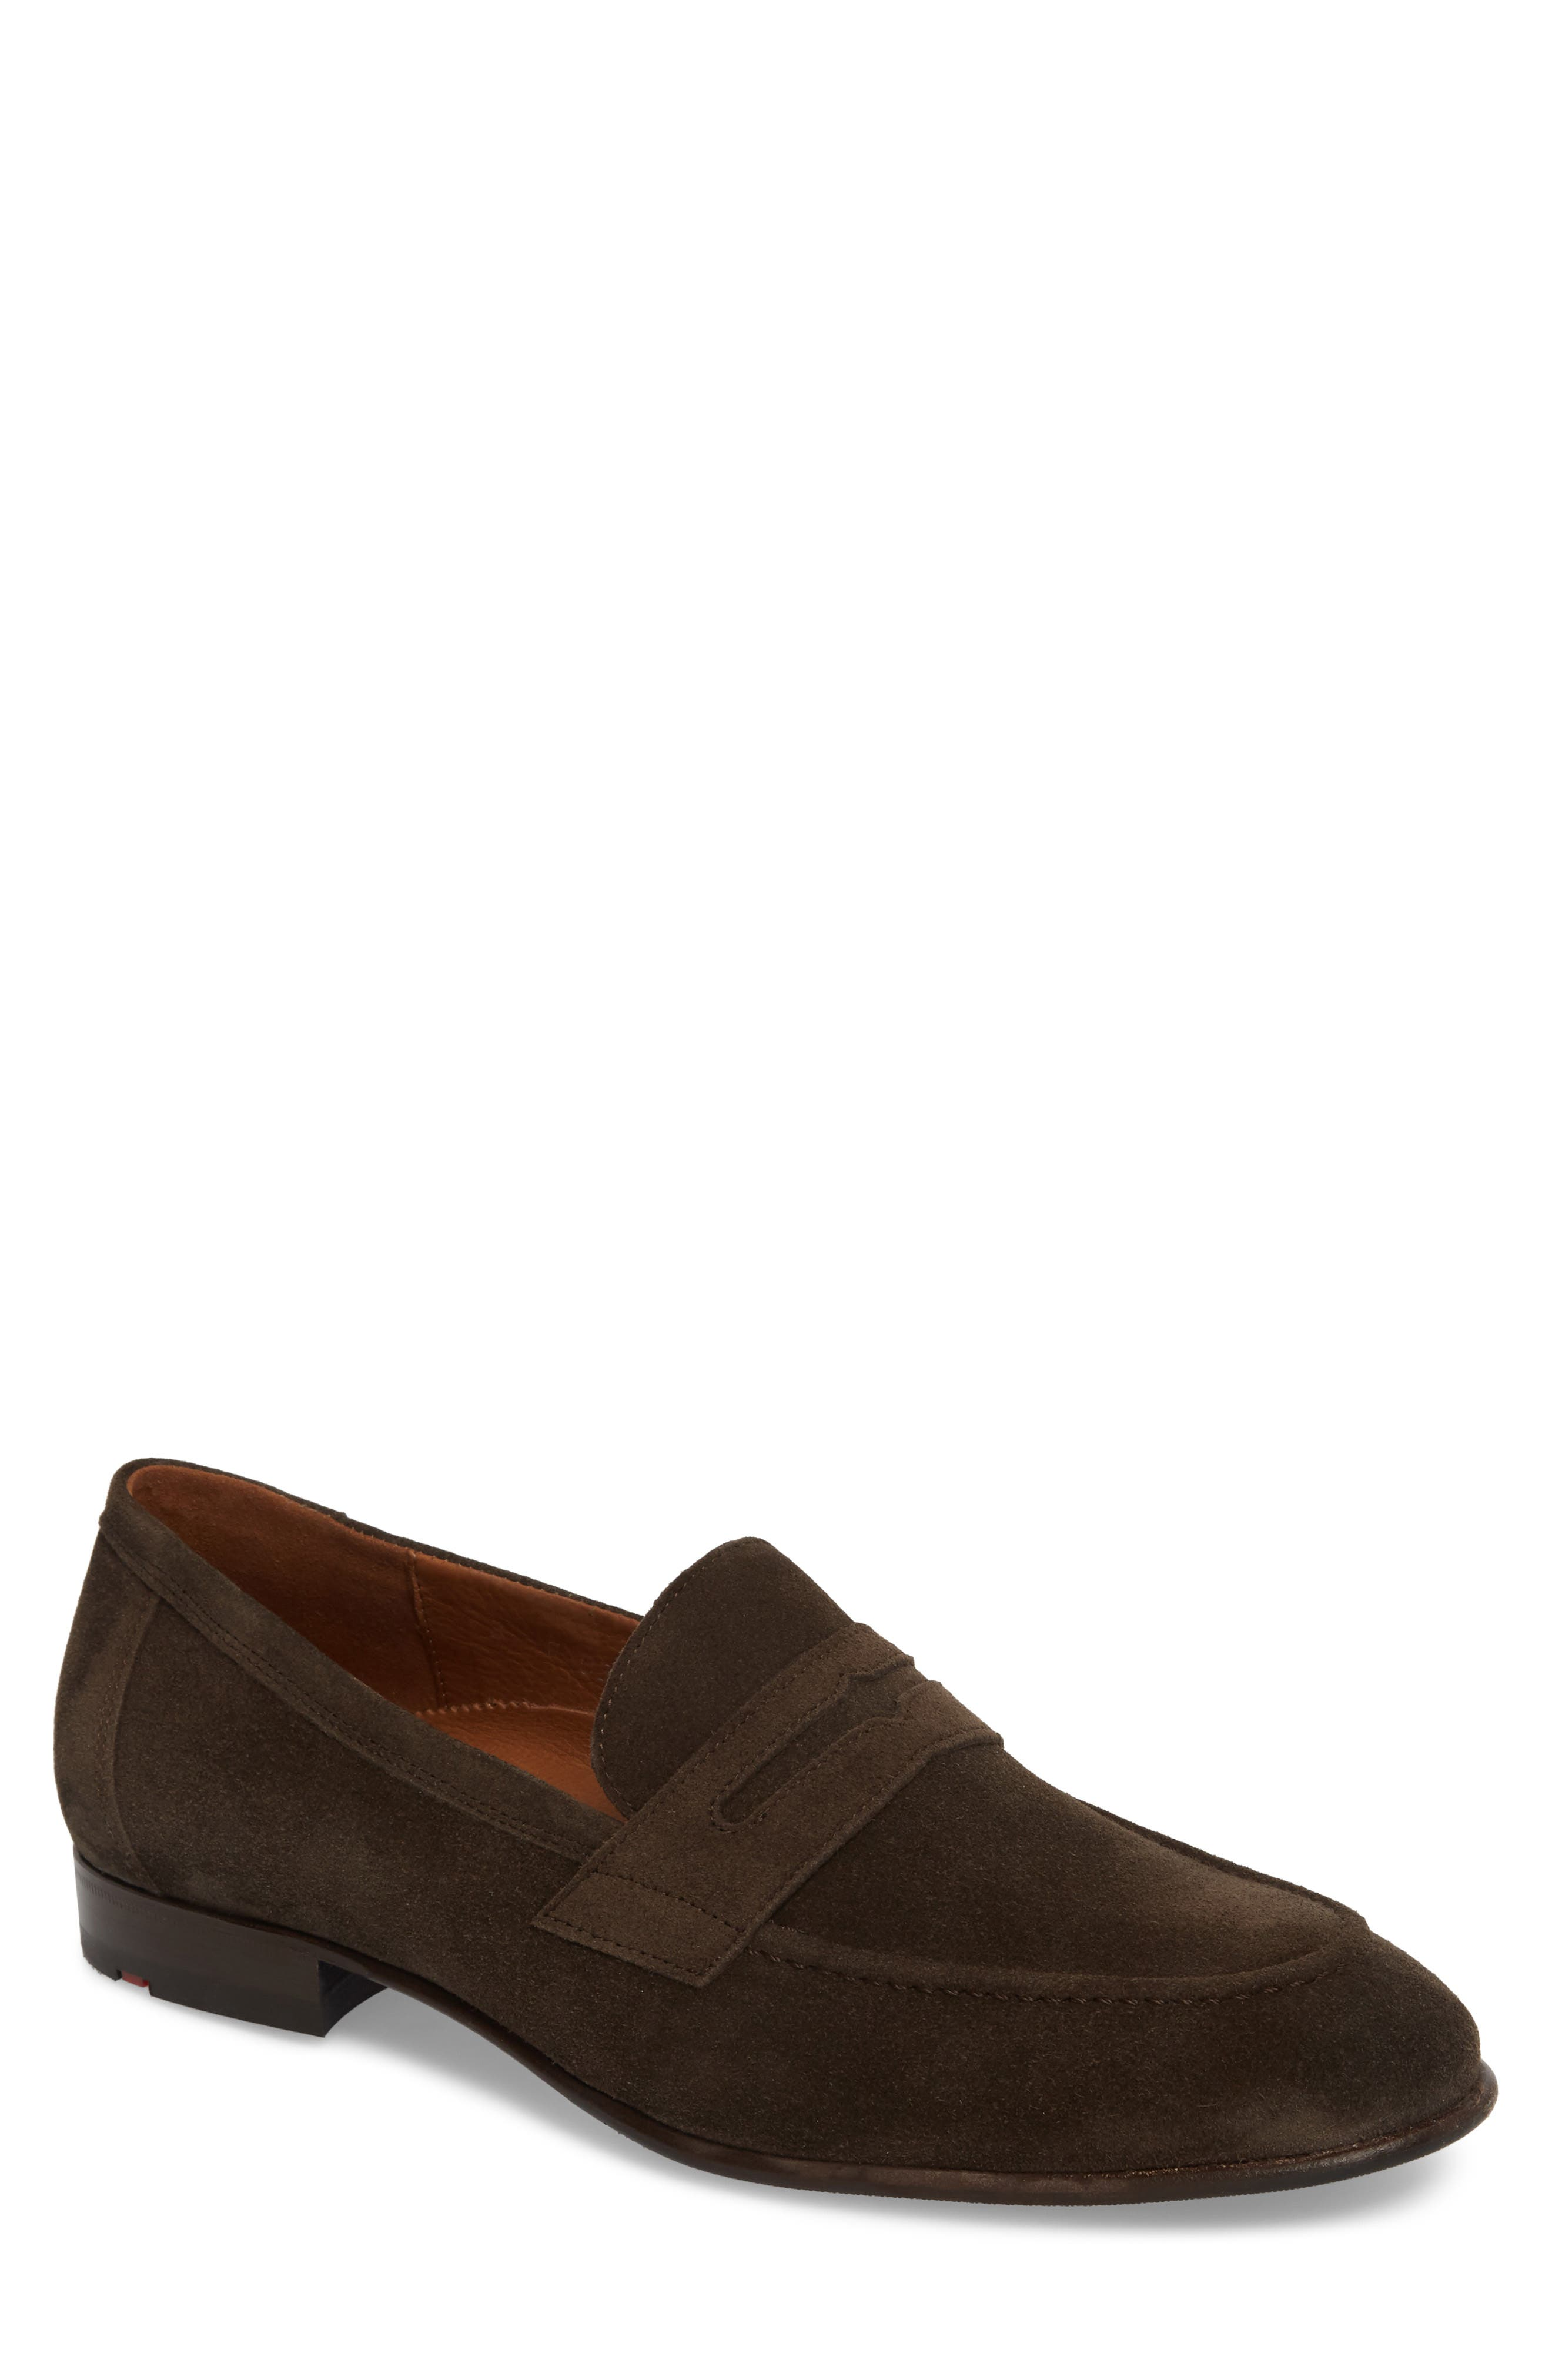 Paxton Penny Loafer,                         Main,                         color, Brown Suede